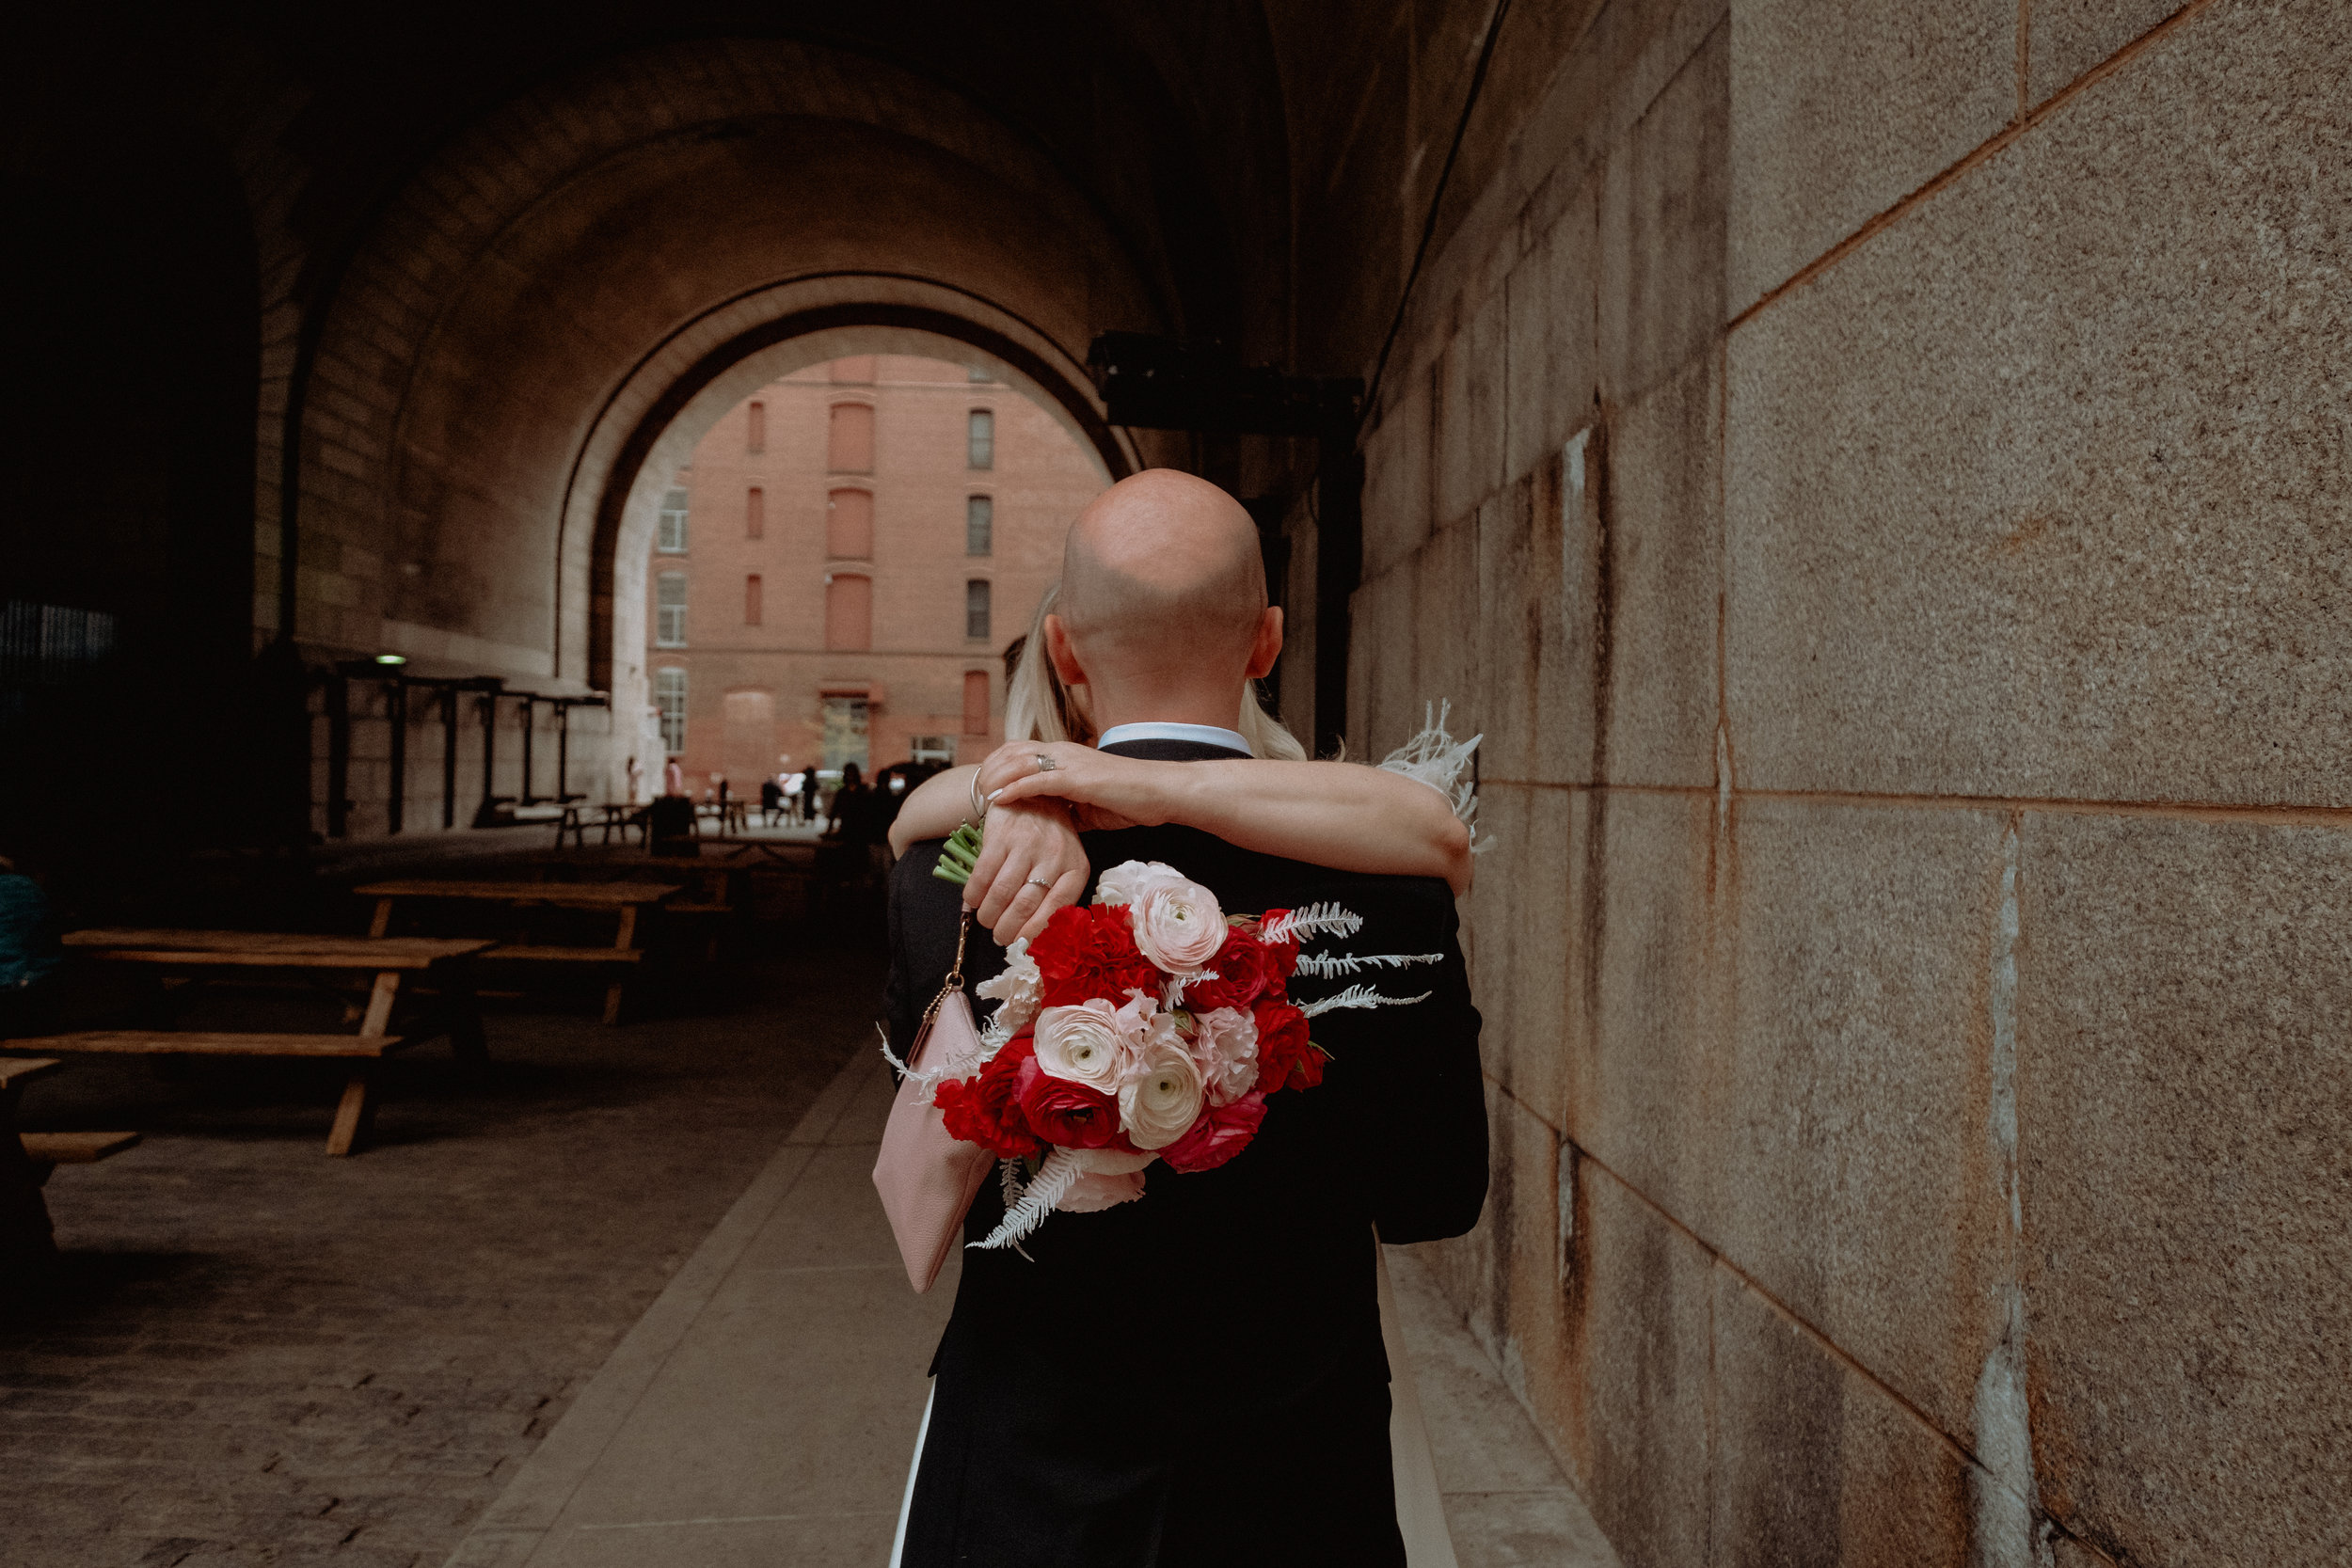 Brooklyn_City_Hall_Elopement_Photographer_Chellise_Michael_Photography235.JPG